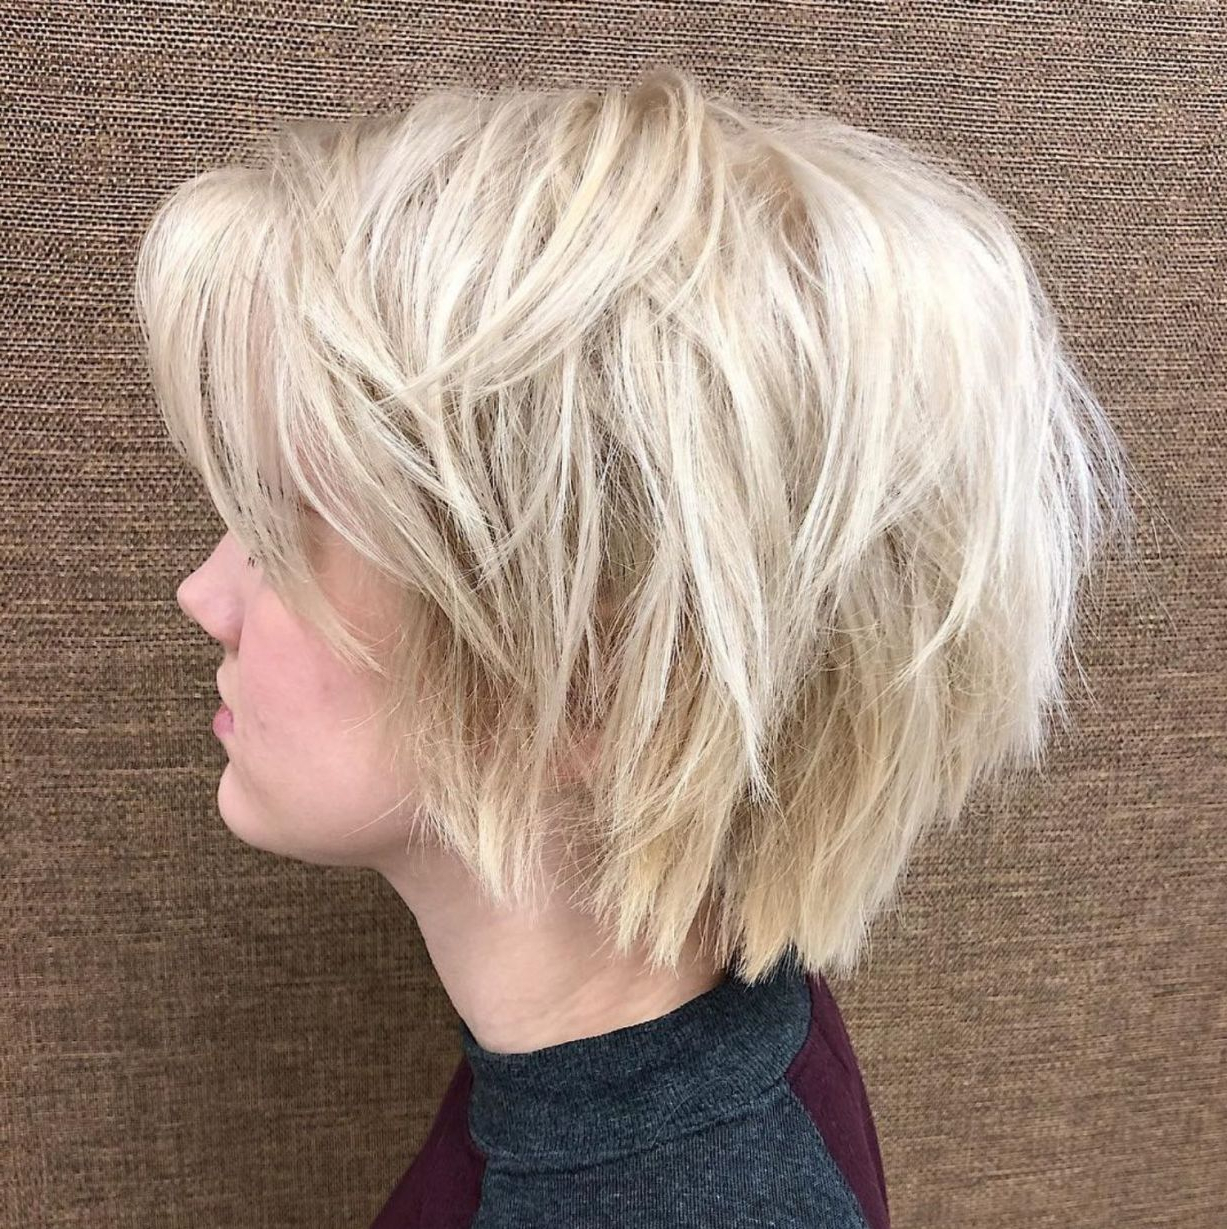 60 Short Shag Hairstyles That You Simply Can't Miss In 2018 | Bob Pertaining To Wispy Silver Bob Hairstyles (View 3 of 20)